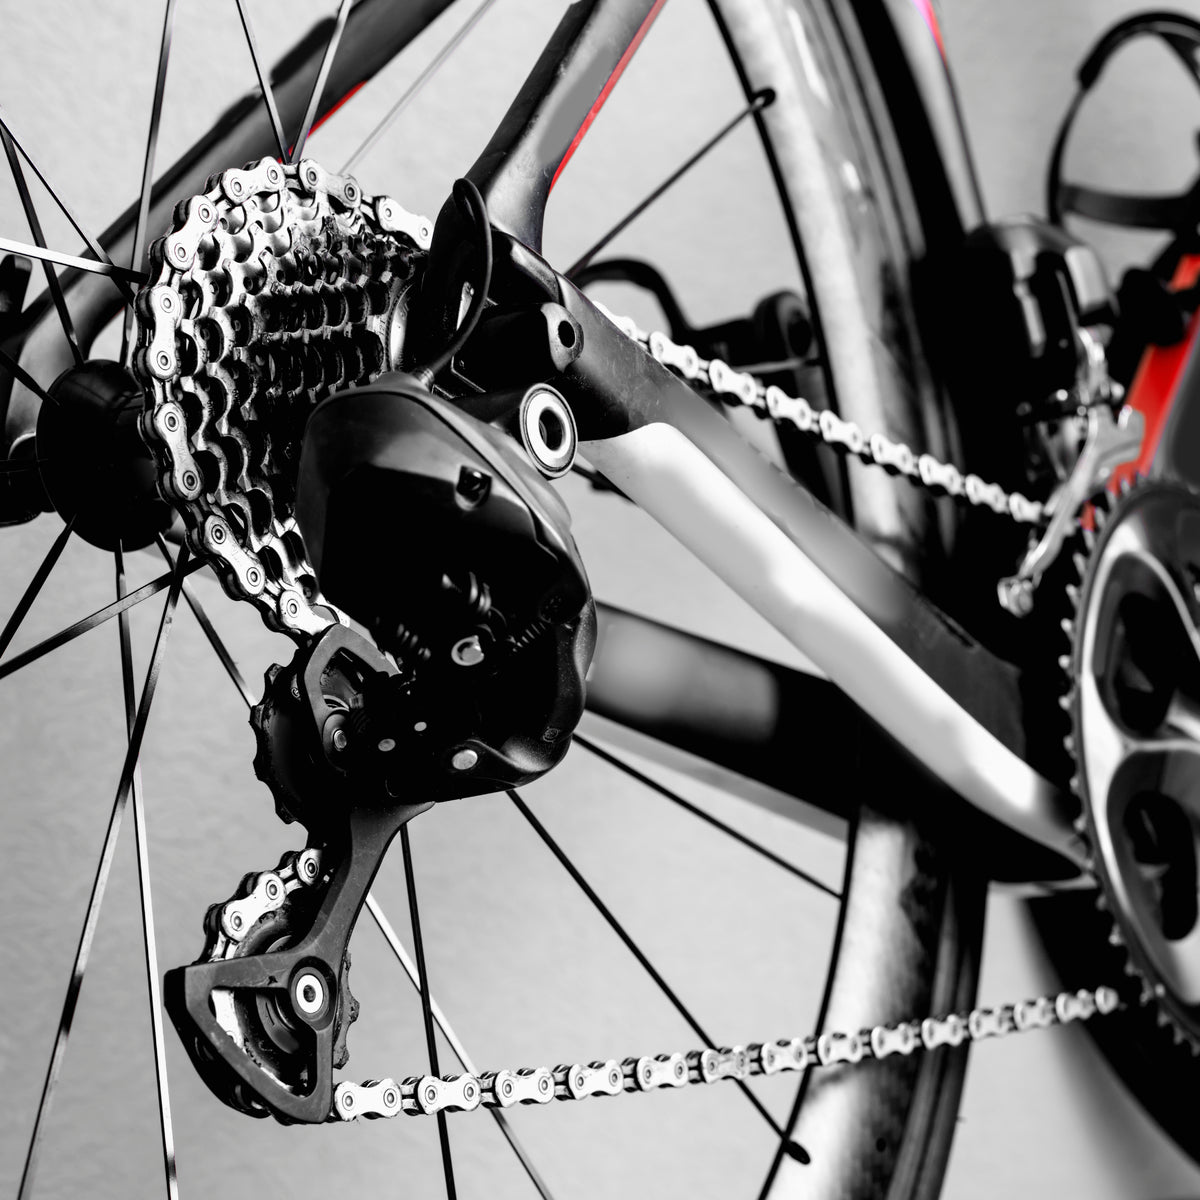 How To Fix A Skipping Bike Chain